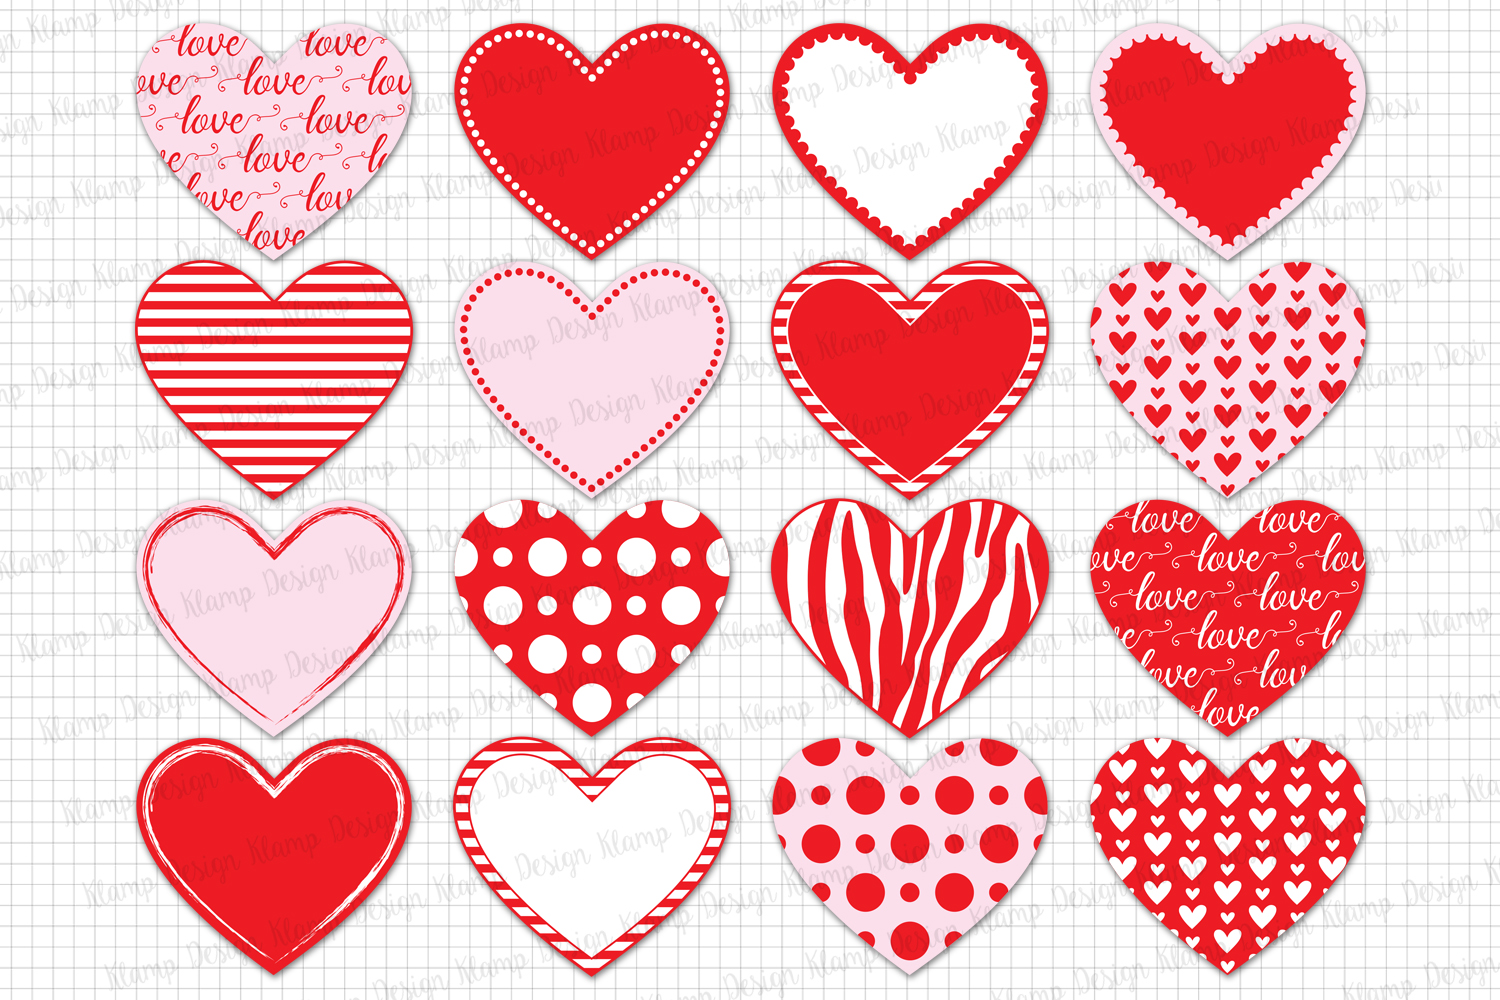 Heart Love Heart Clipart Valentine Heart Clip Art Valentines Day Heart  Graphic and Illustrations.